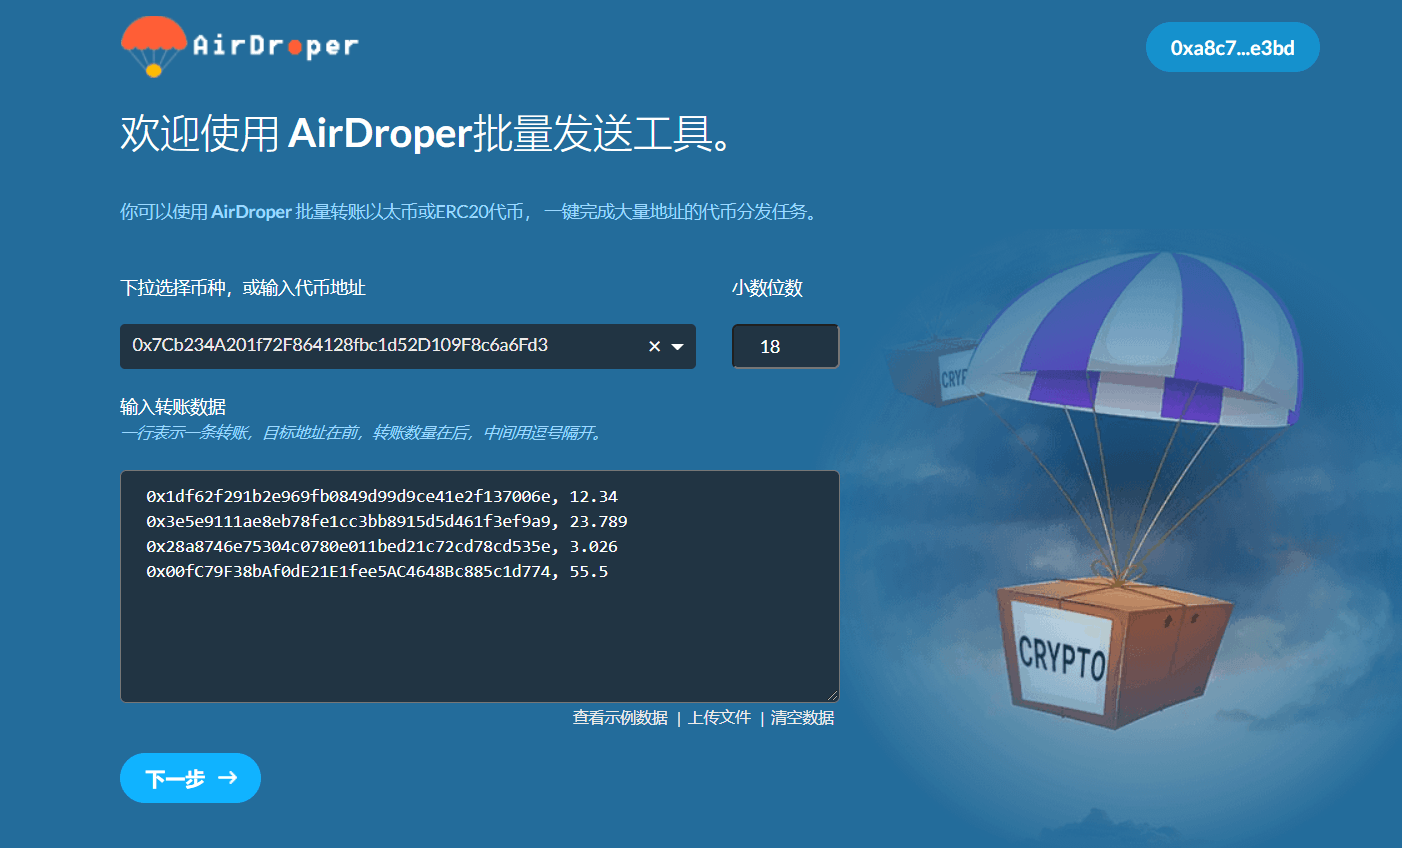 AirDroper Step 1 done